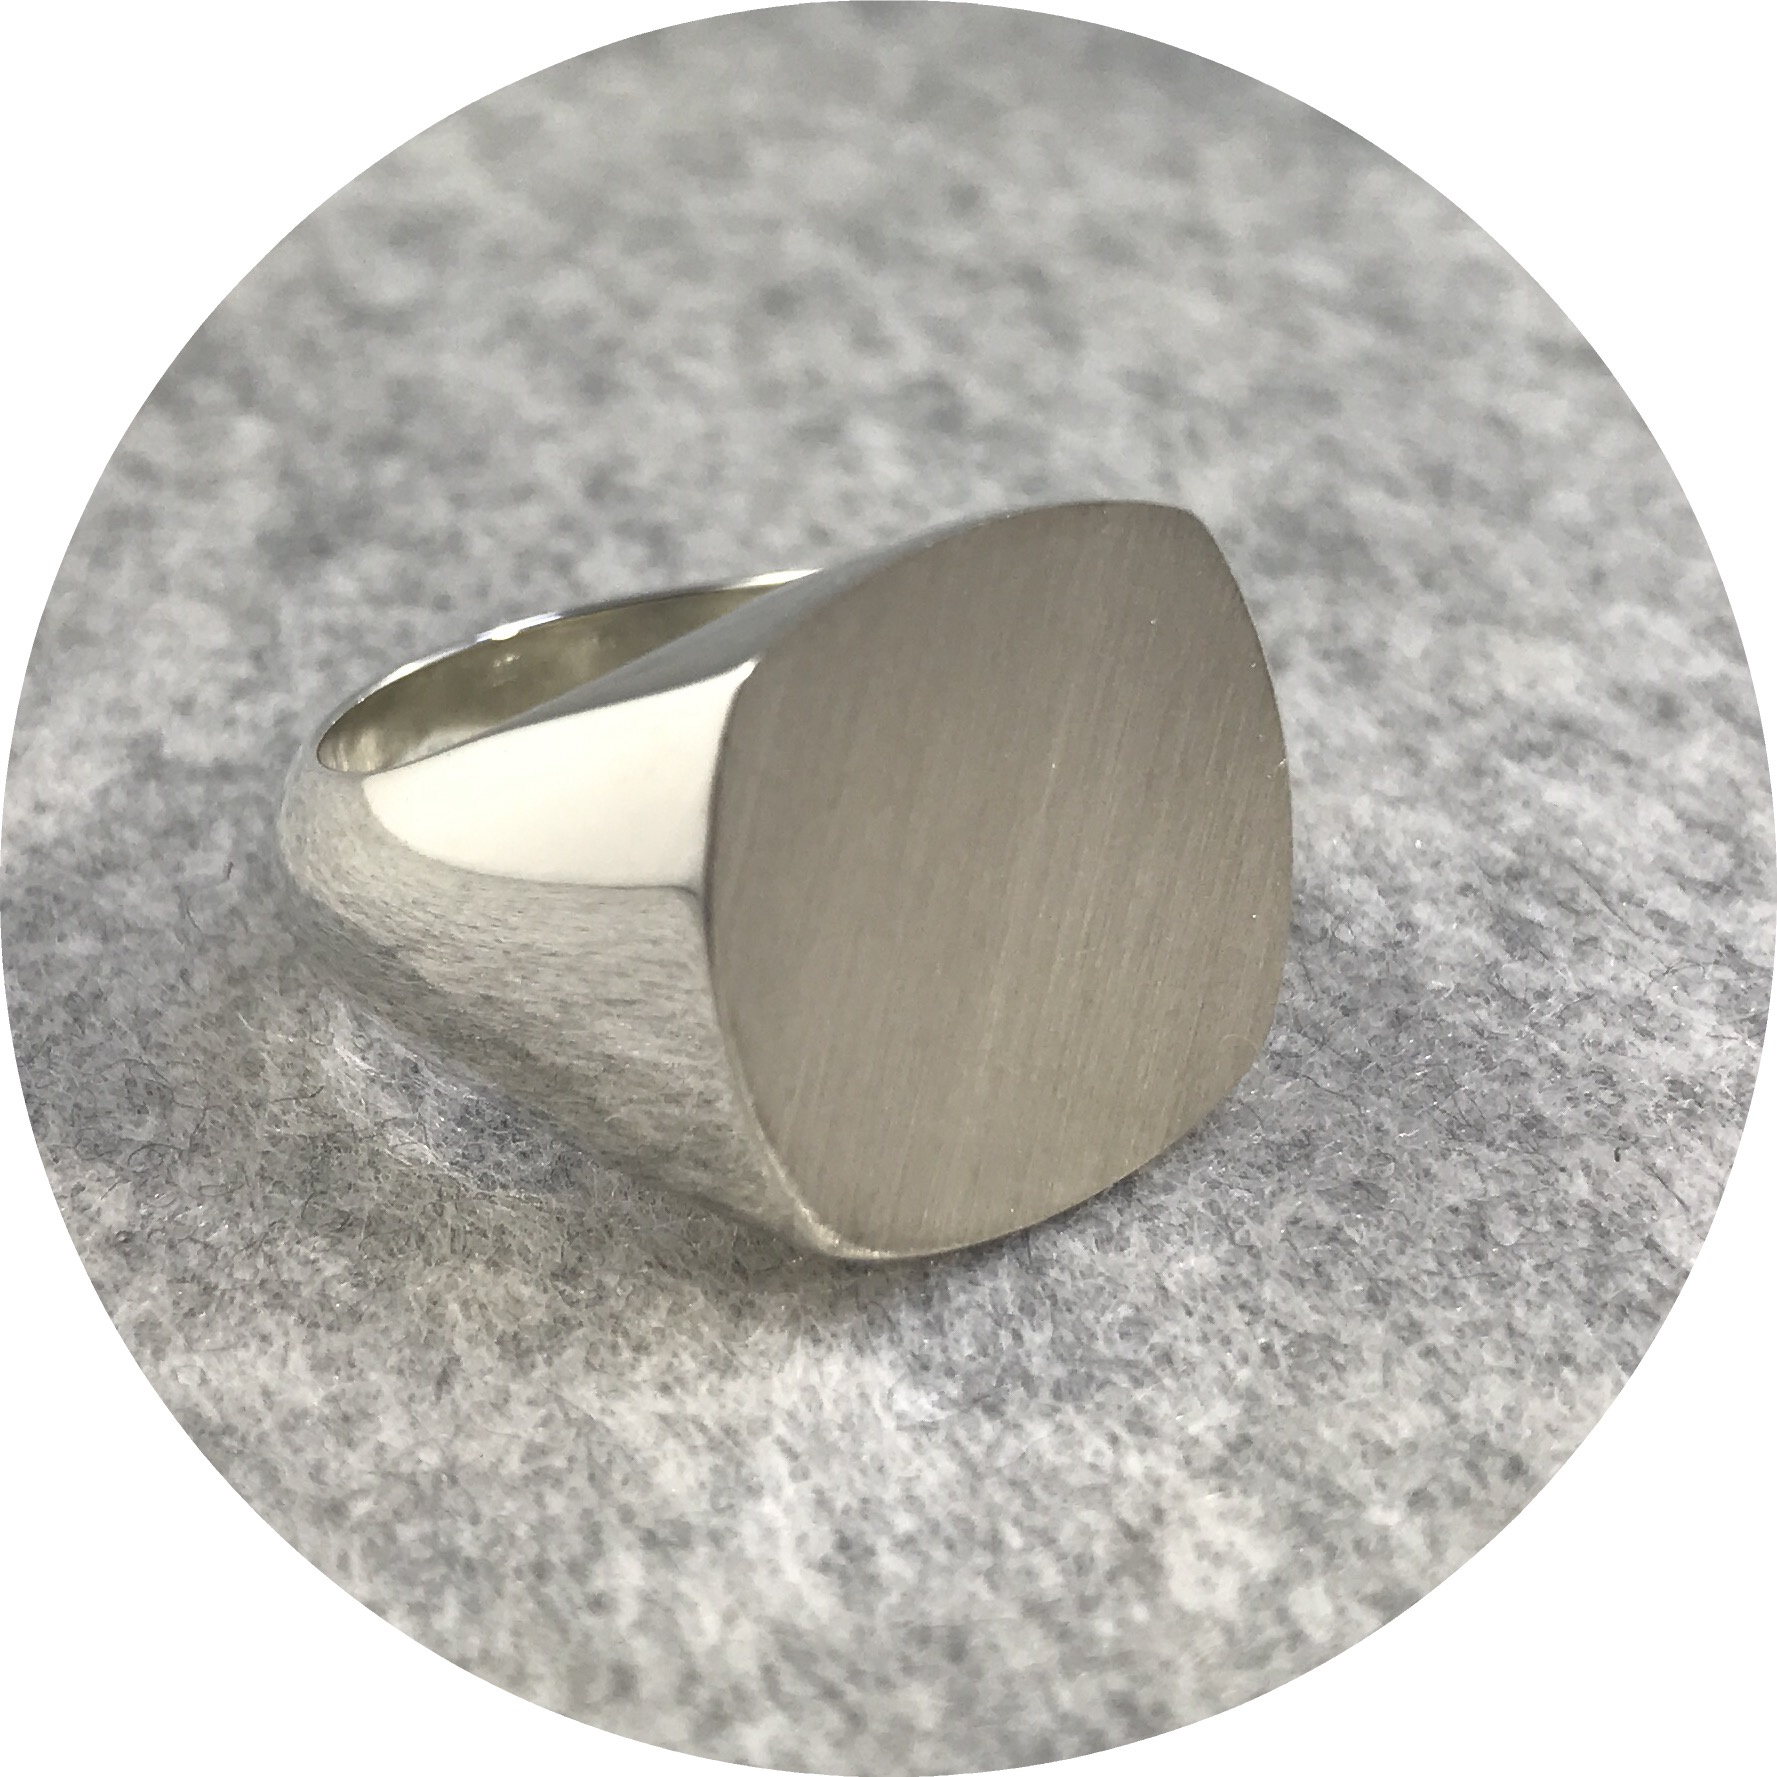 Fin Mahon- Rounded Square Flat top signet ring. Solid sterling silver. size U